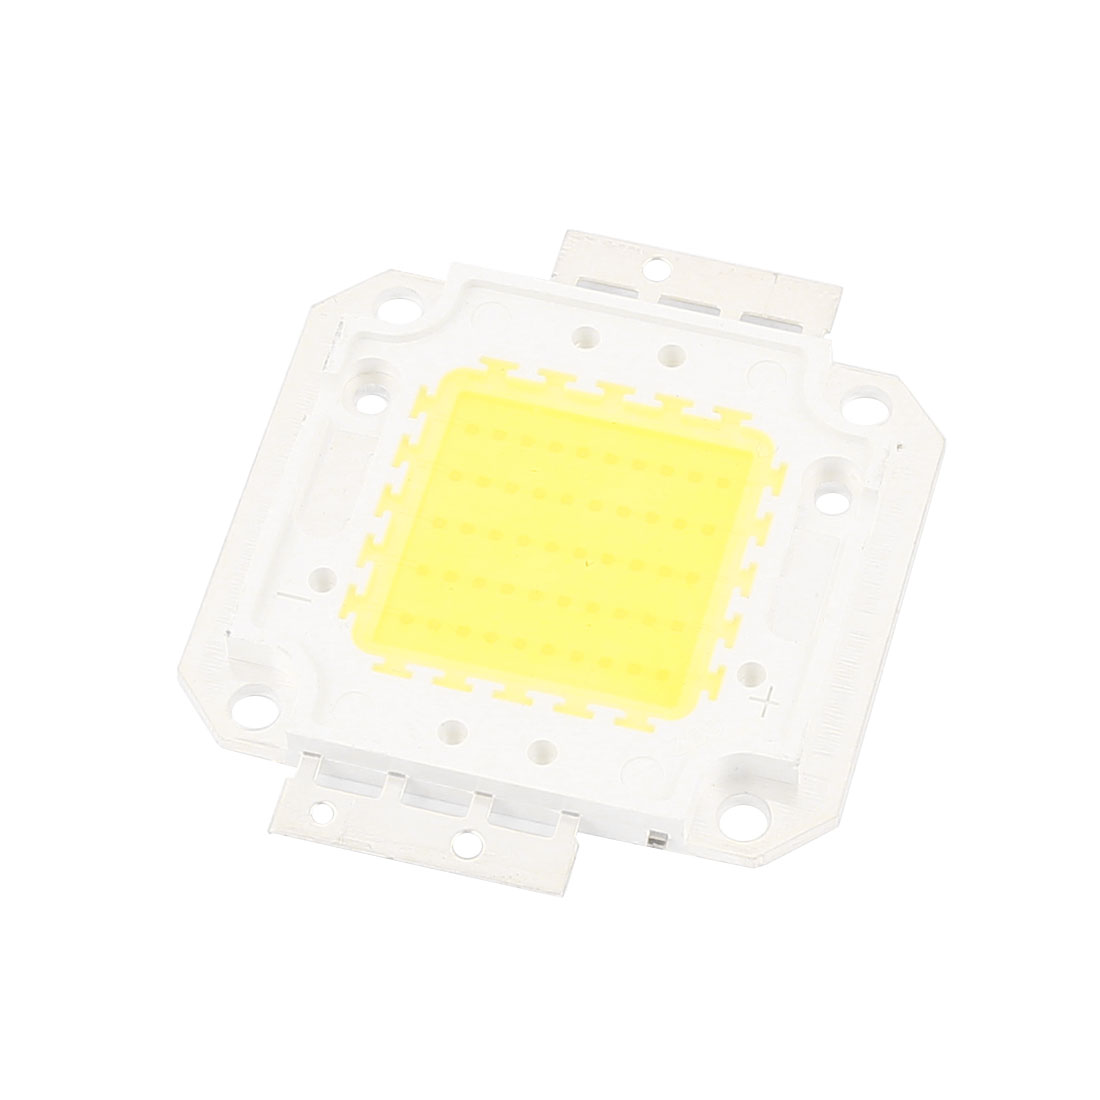 Square Shape White Light Lamp SMD COB LED Module Chip DC 30-36V 50W